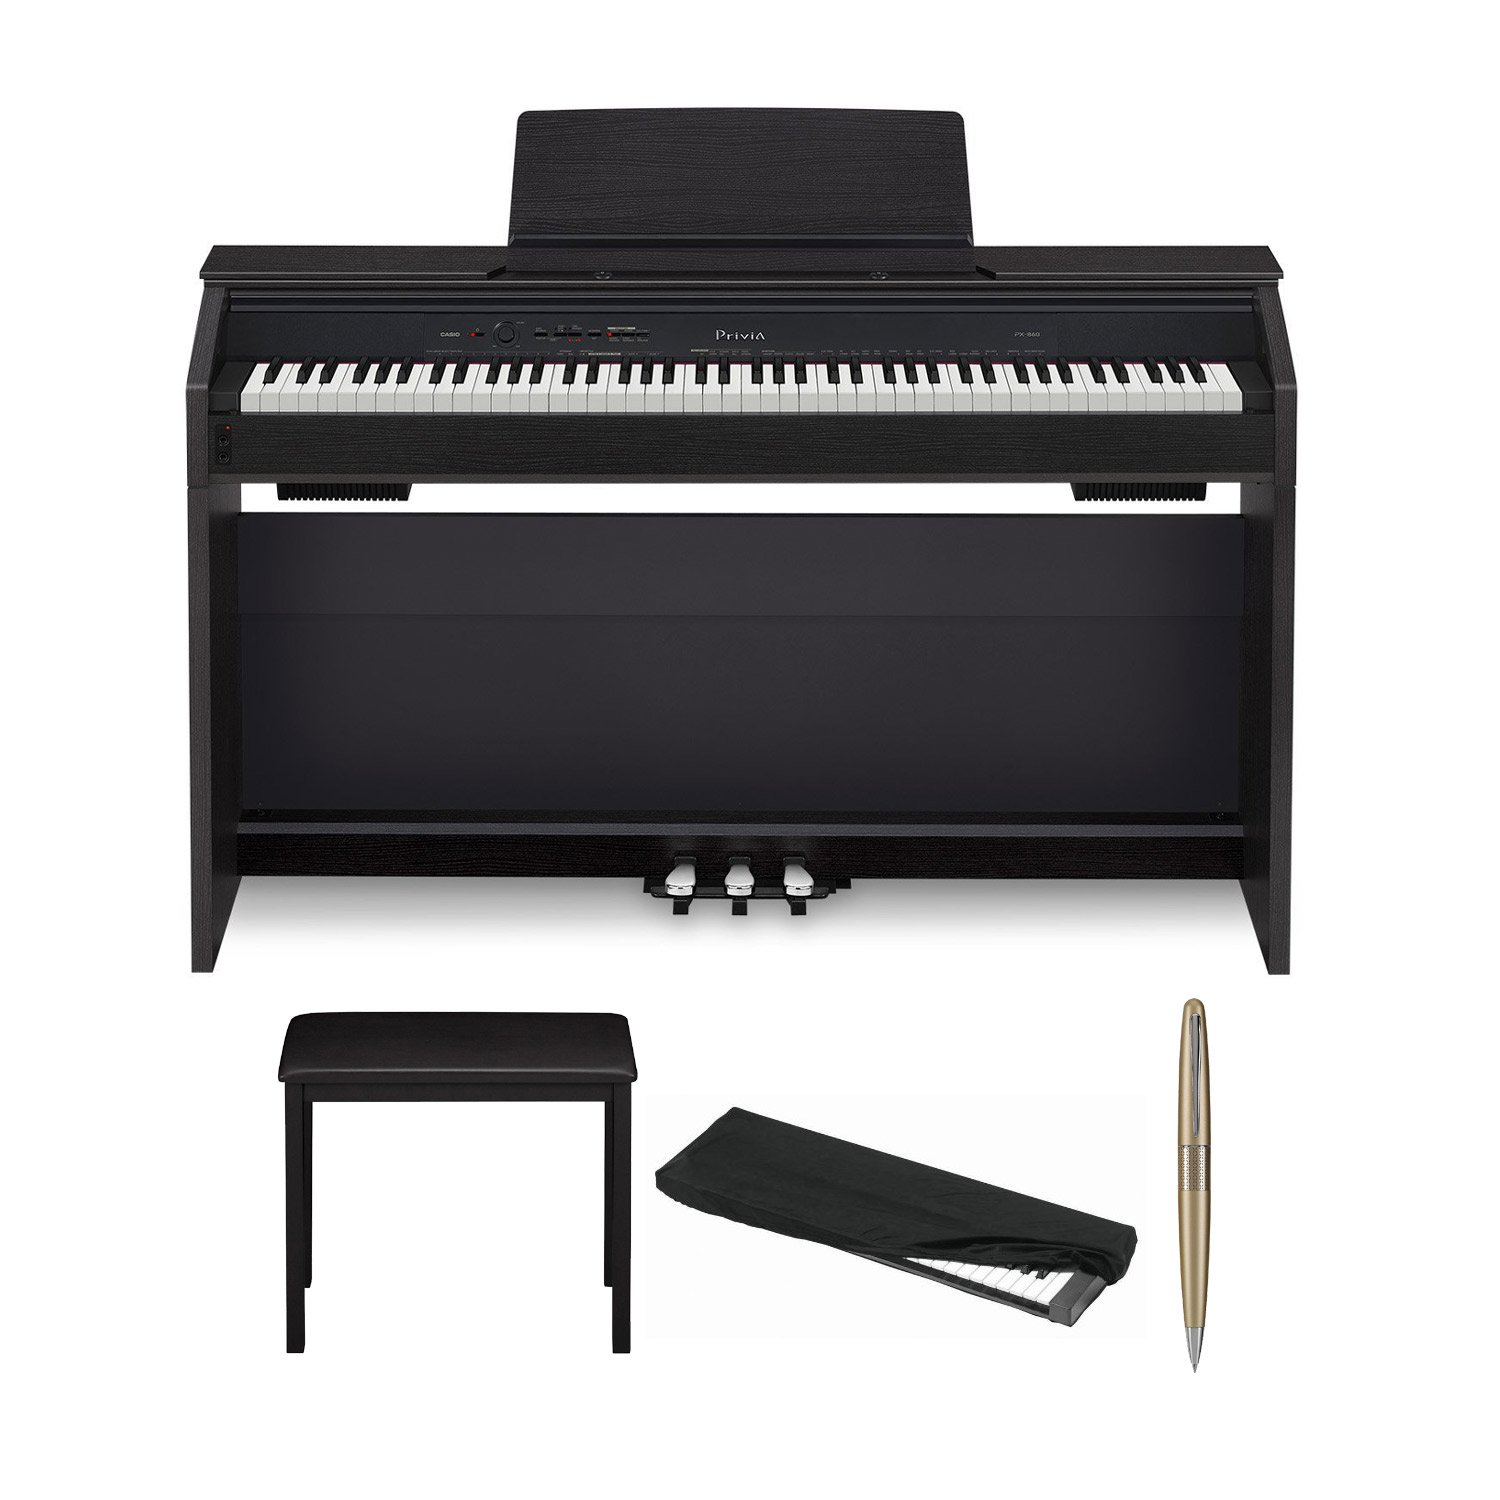 Casio PX860 Black 88-Key Digital Piano with Adjustable storage bench, ER Music Key Cover, and ER Pen